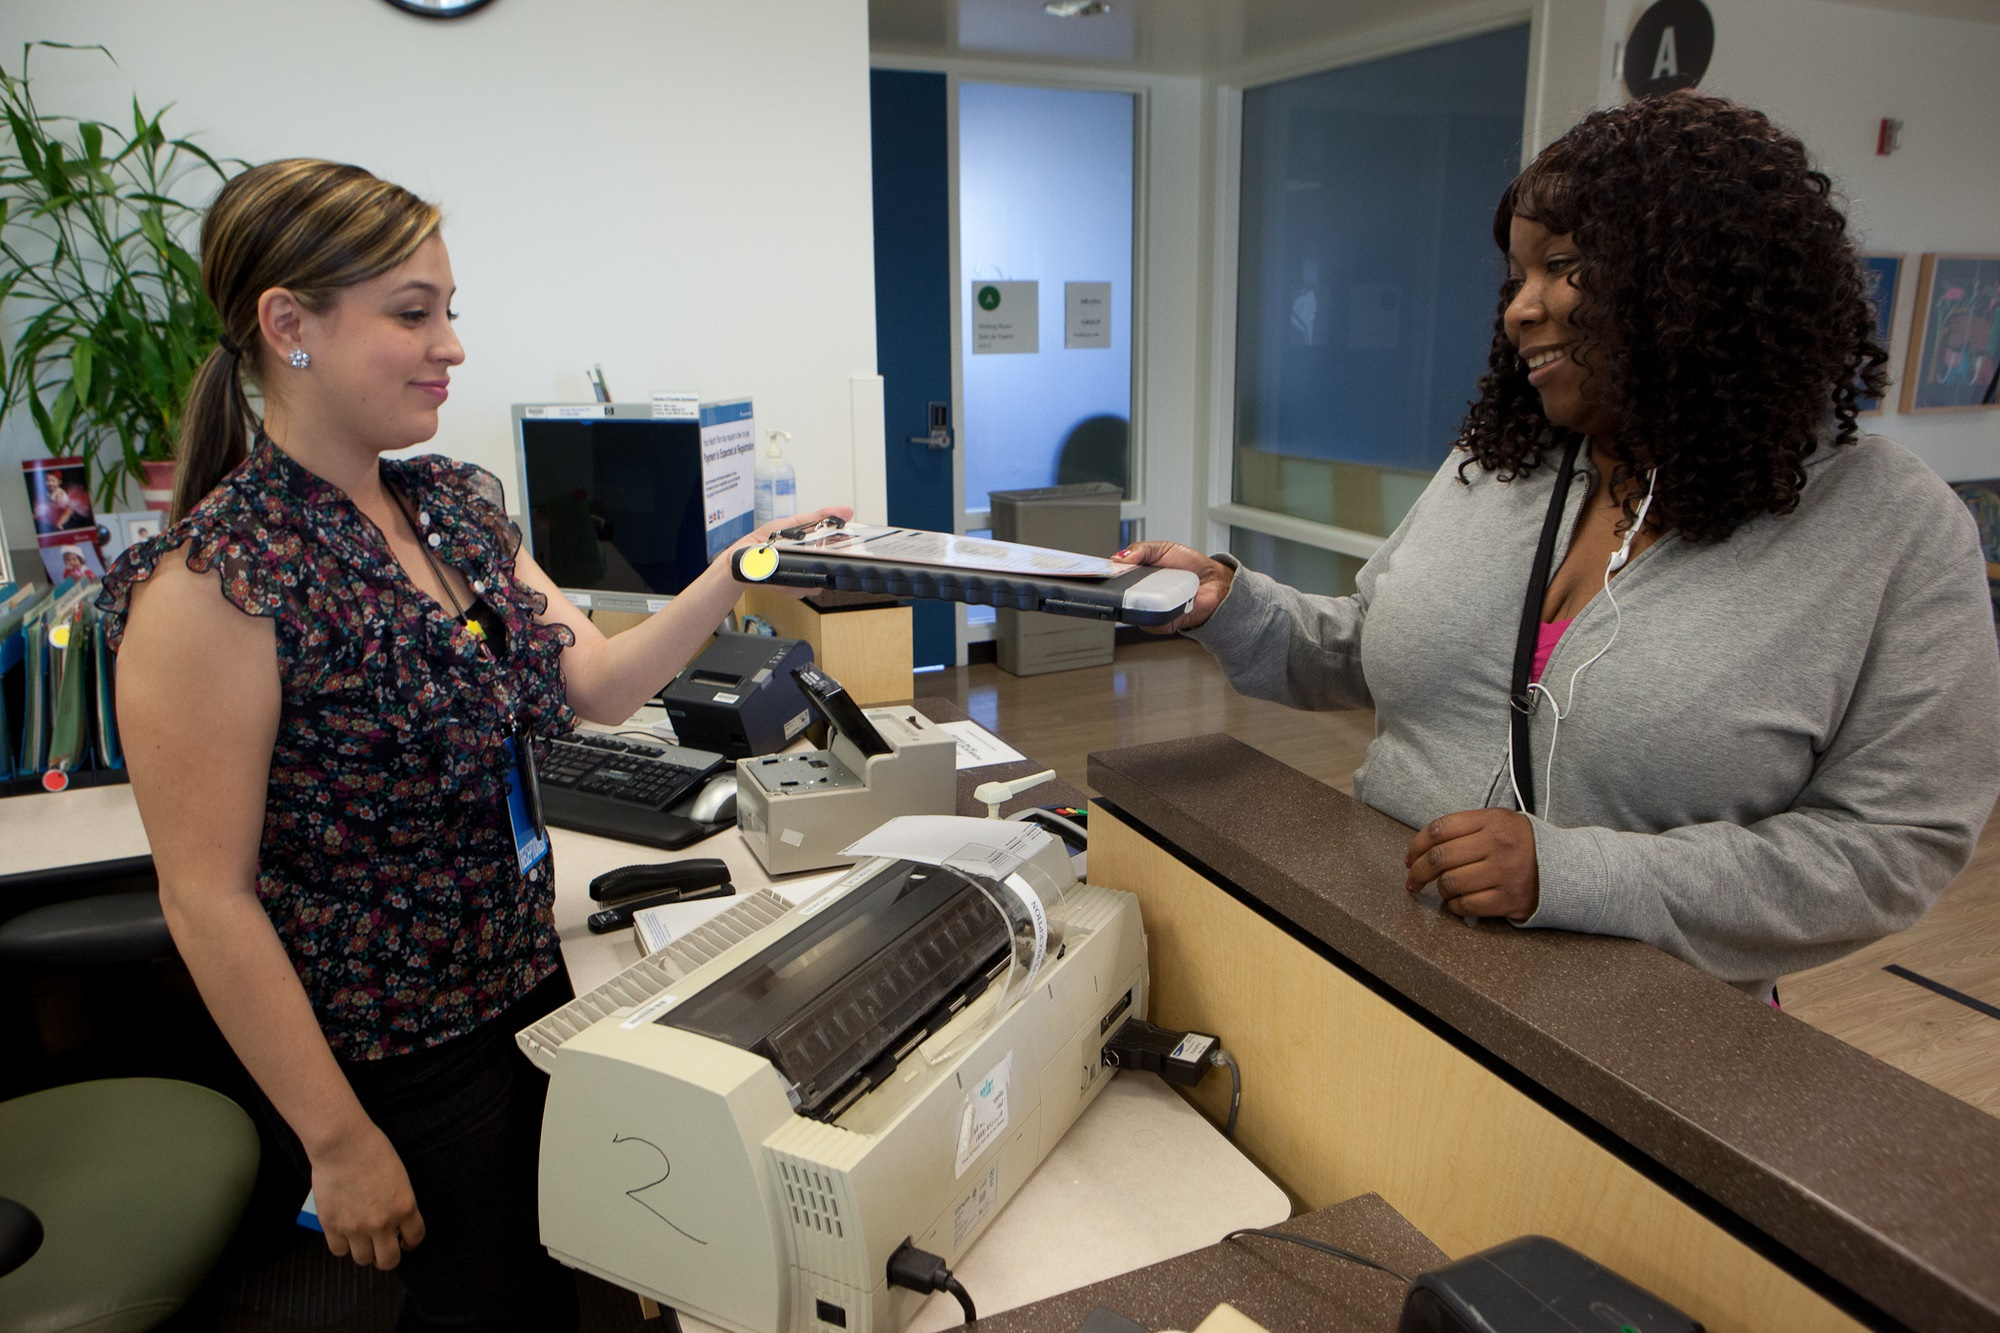 Receptionist greeting a patient at a clinic